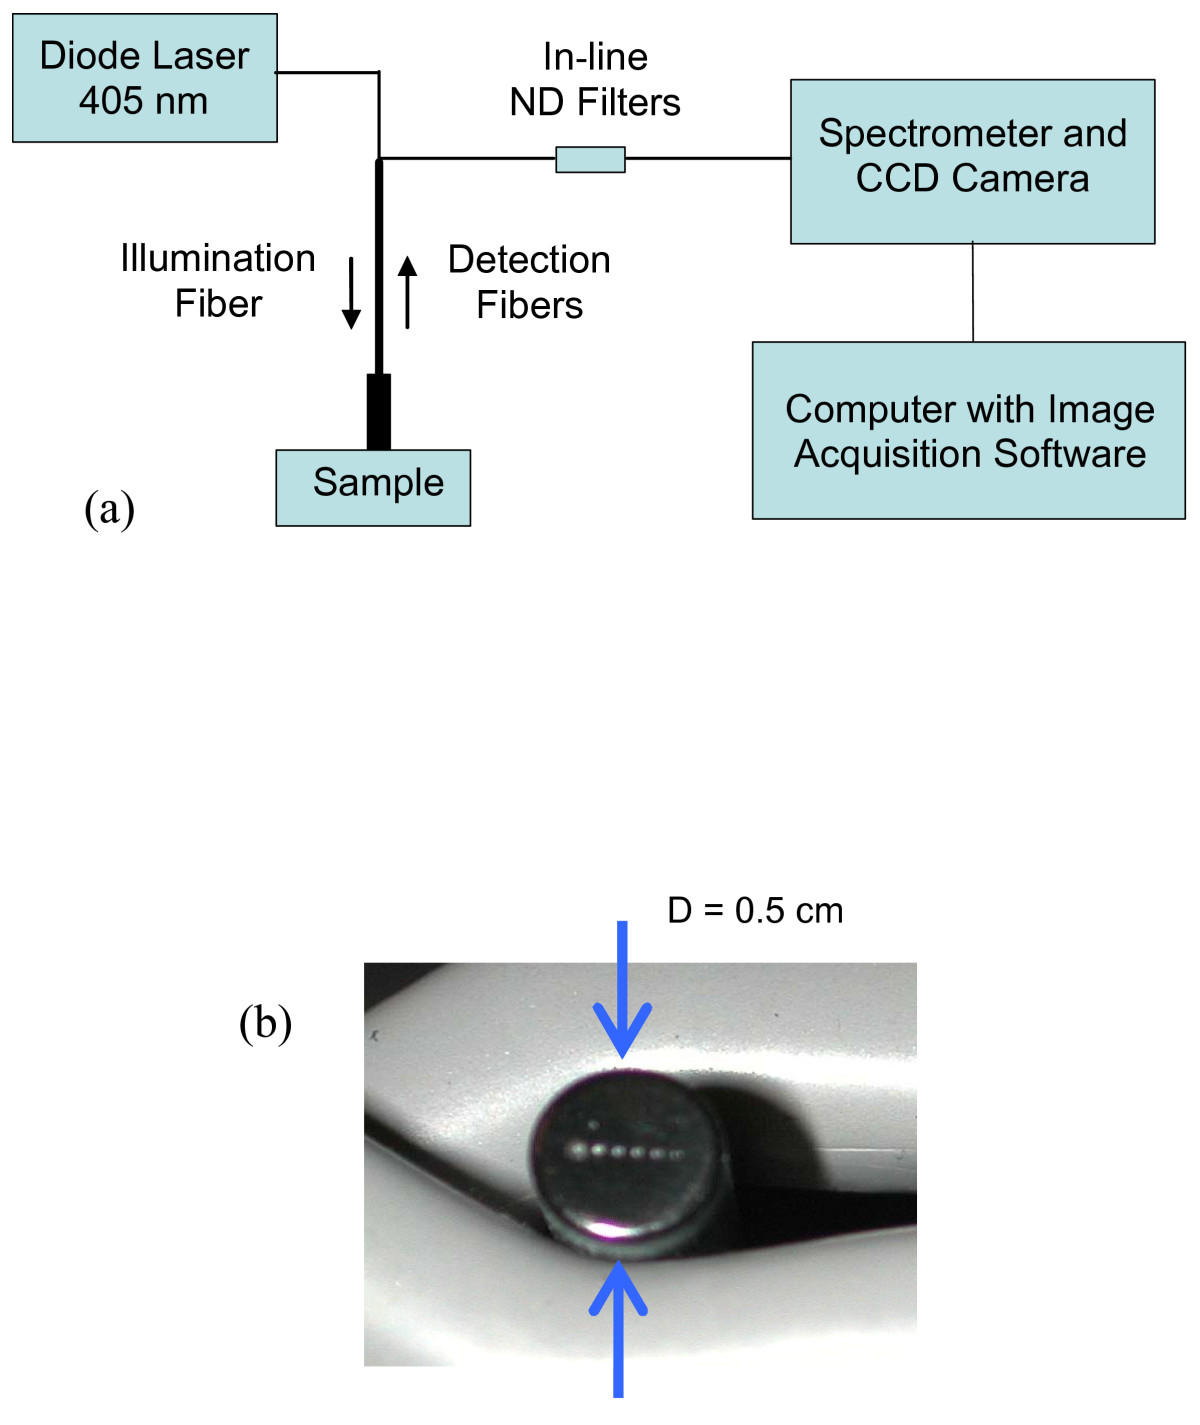 https://static-content.springer.com/image/art%3A10.1186%2F1475-925X-5-49/MediaObjects/12938_2006_Article_192_Fig1_HTML.jpg